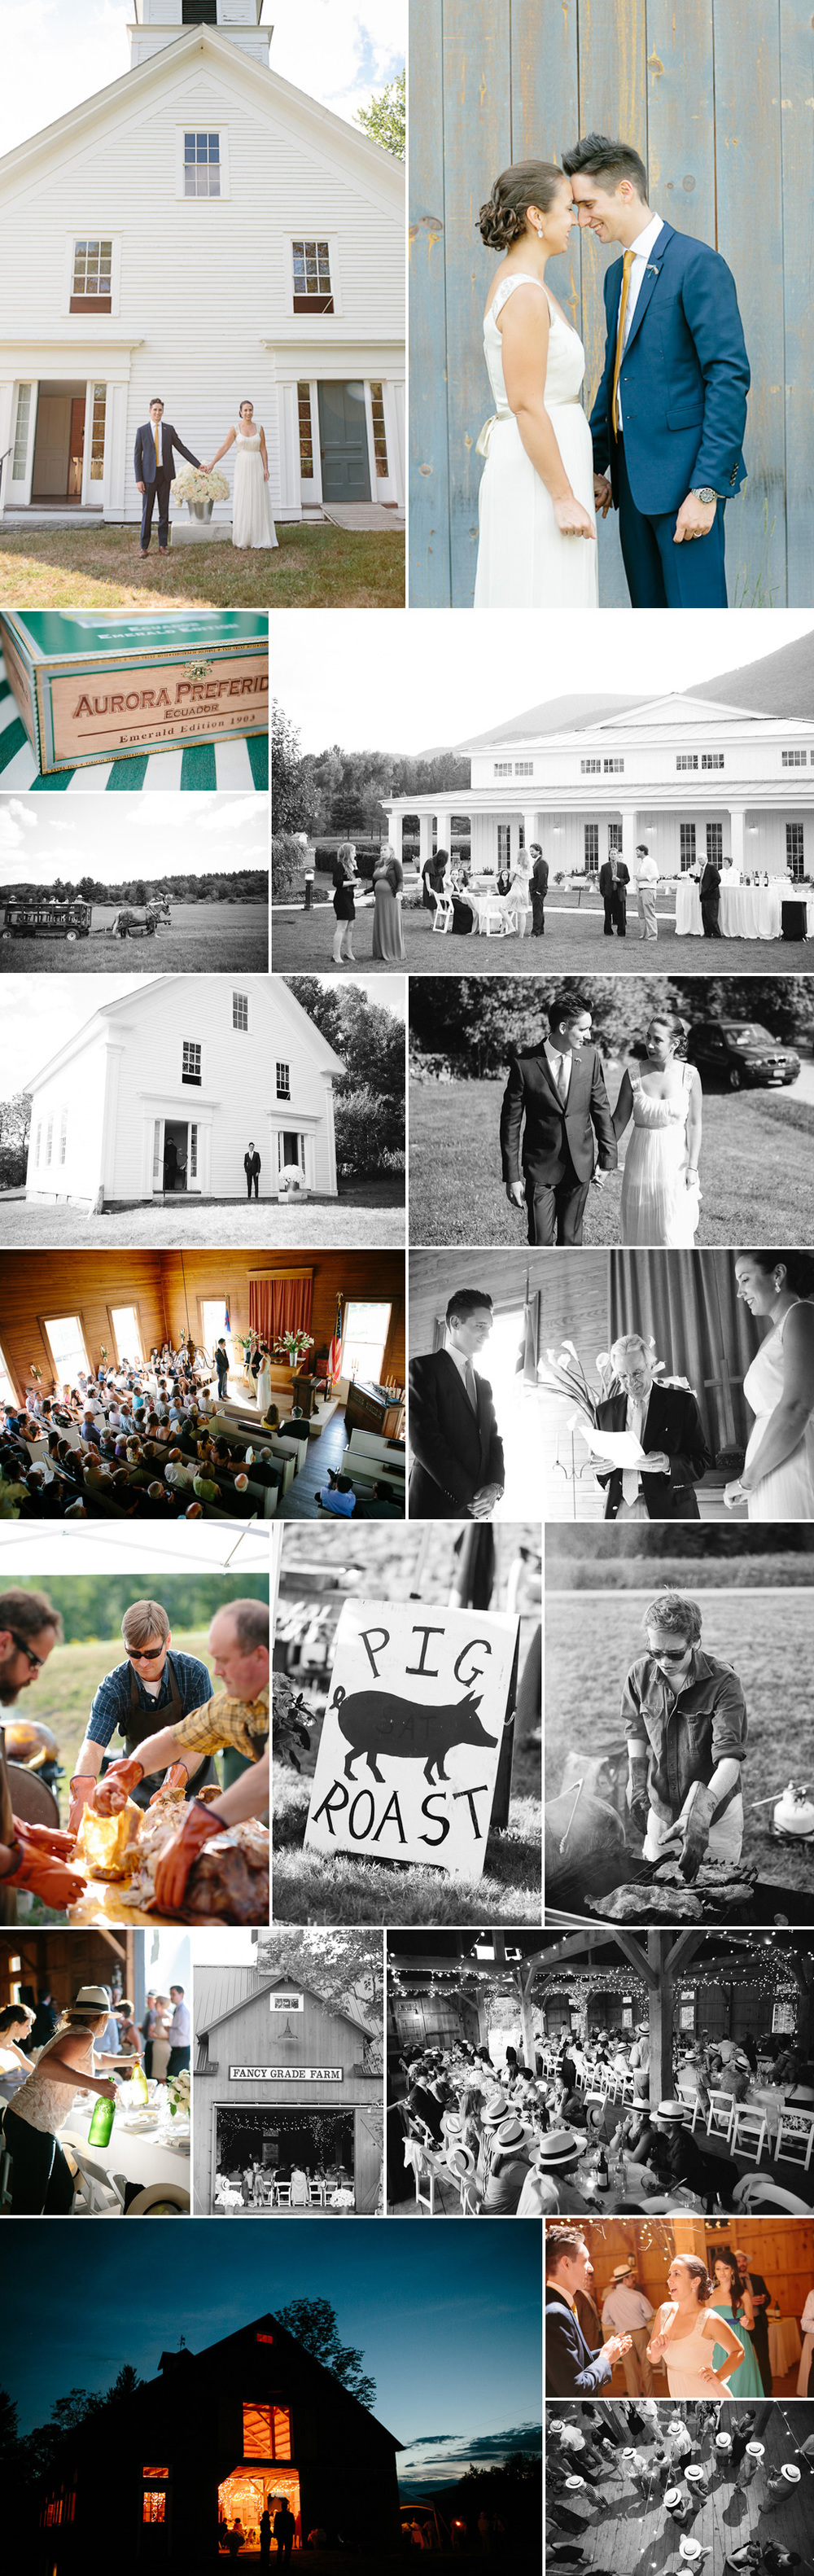 vermont-wedding-in-a-barn.jpg